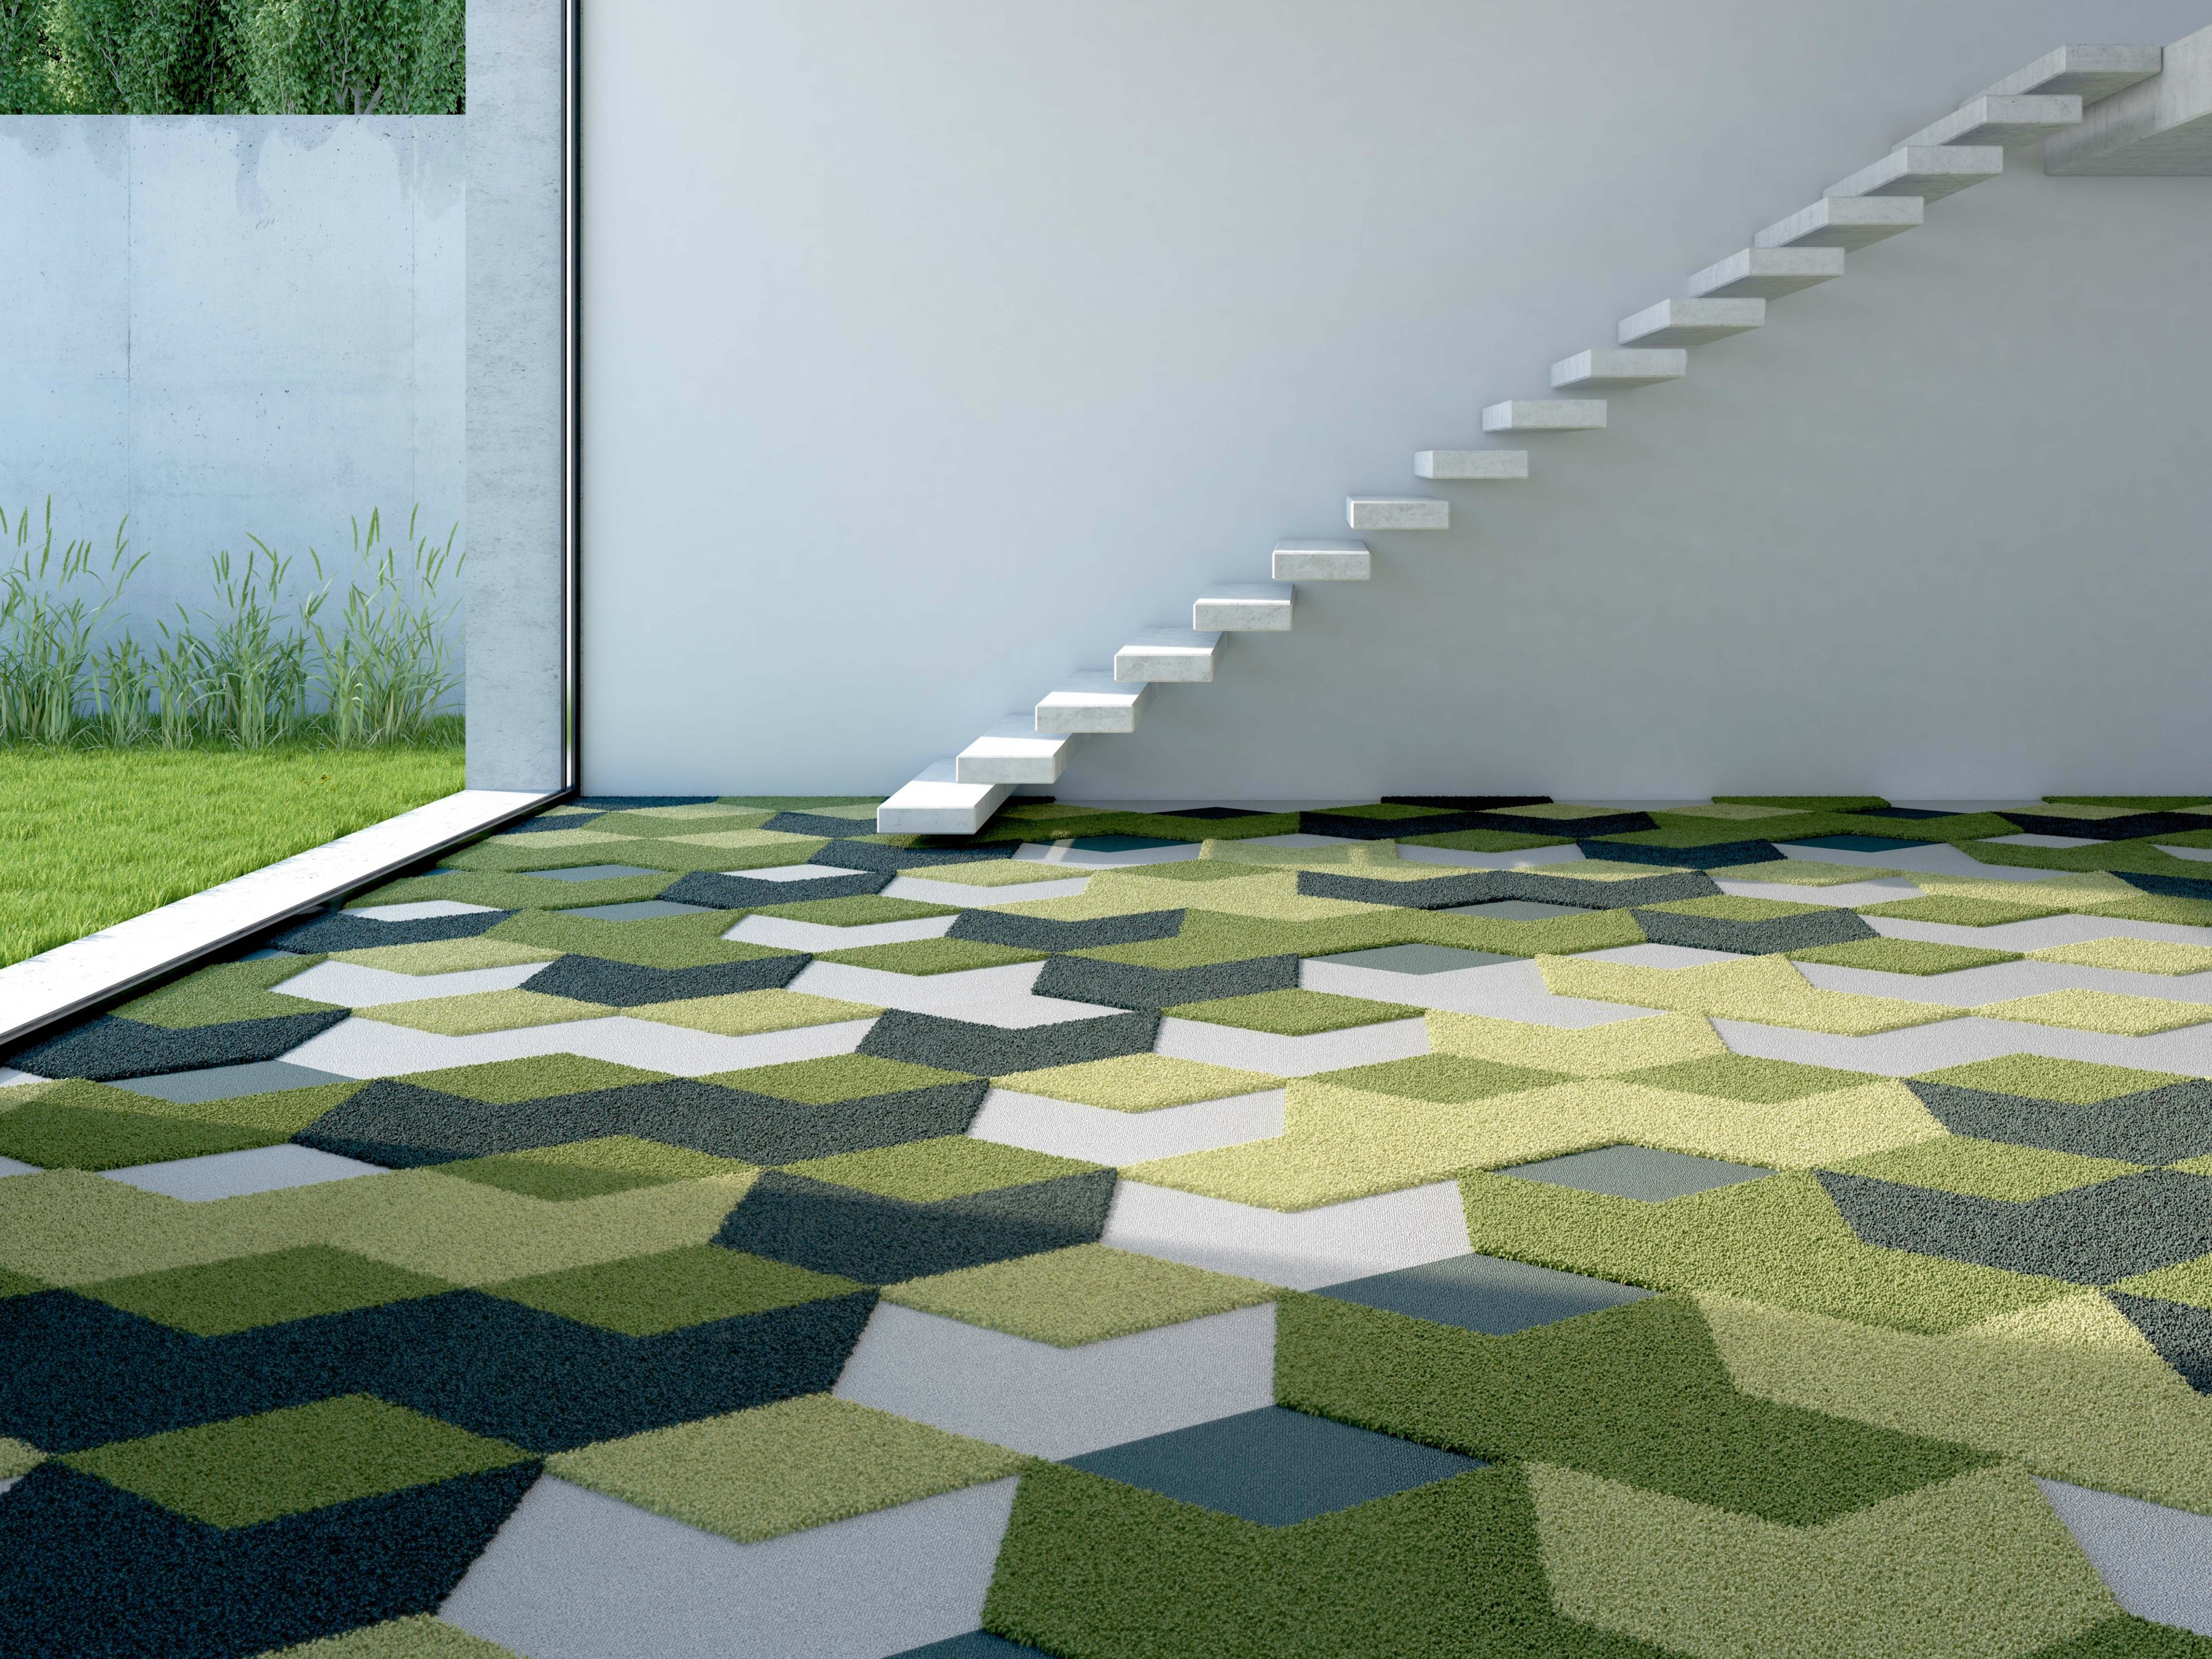 Moquette tapis darts diamonds by vorwerk teppichwerke for Moquette geometrique